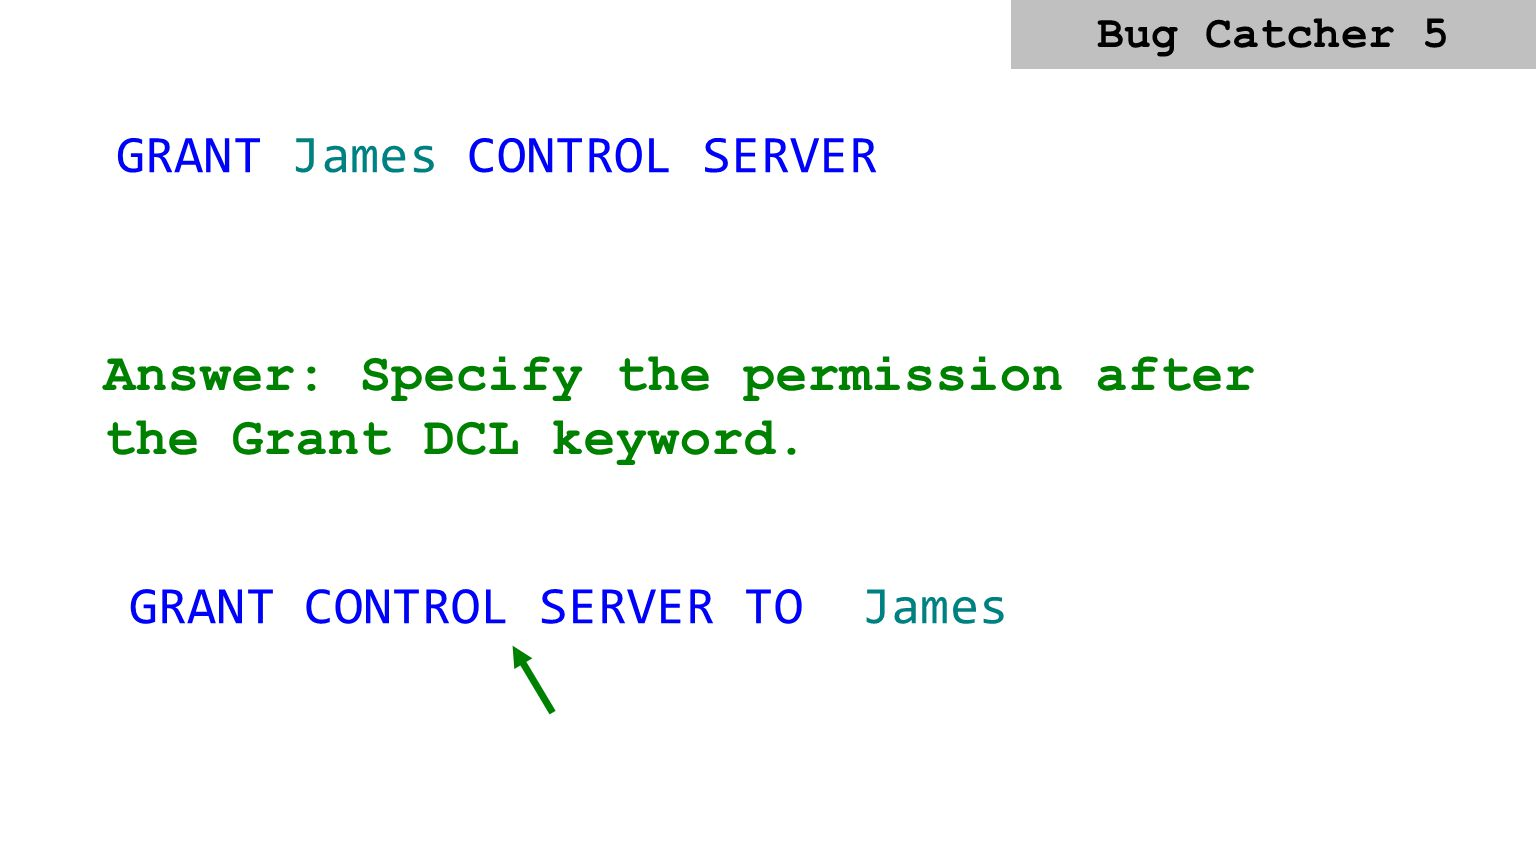 GRANT James CONTROL SERVER Answer: Specify the permission after the Grant DCL keyword.